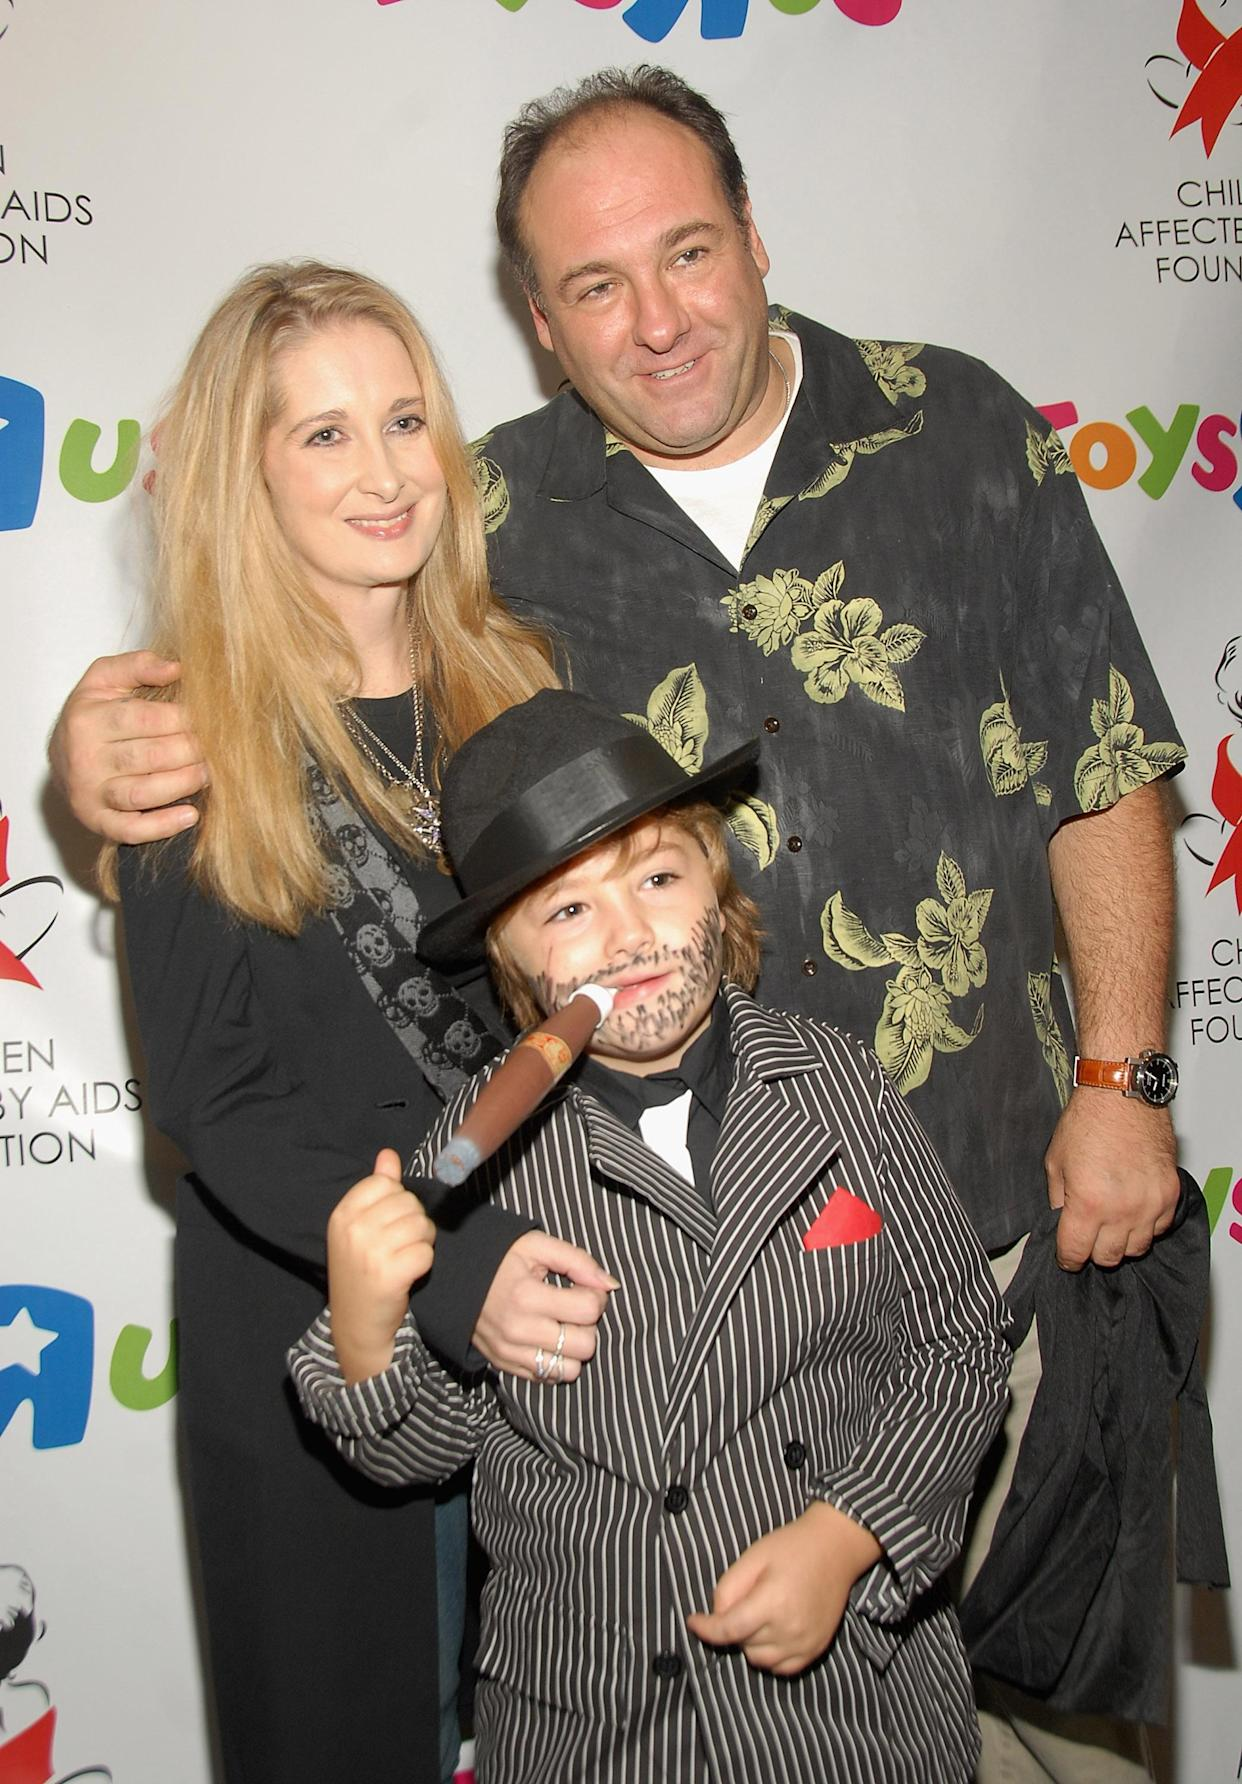 NEW YORK - OCTOBER 21:  James Gandolfini with Marcy Gandolfini and son Michael at Children Affected by AIDS Foundation's Dream Halloween at Roseland in New York City on October 21, 2007  (Photo by Theo Wargo/WireImage)